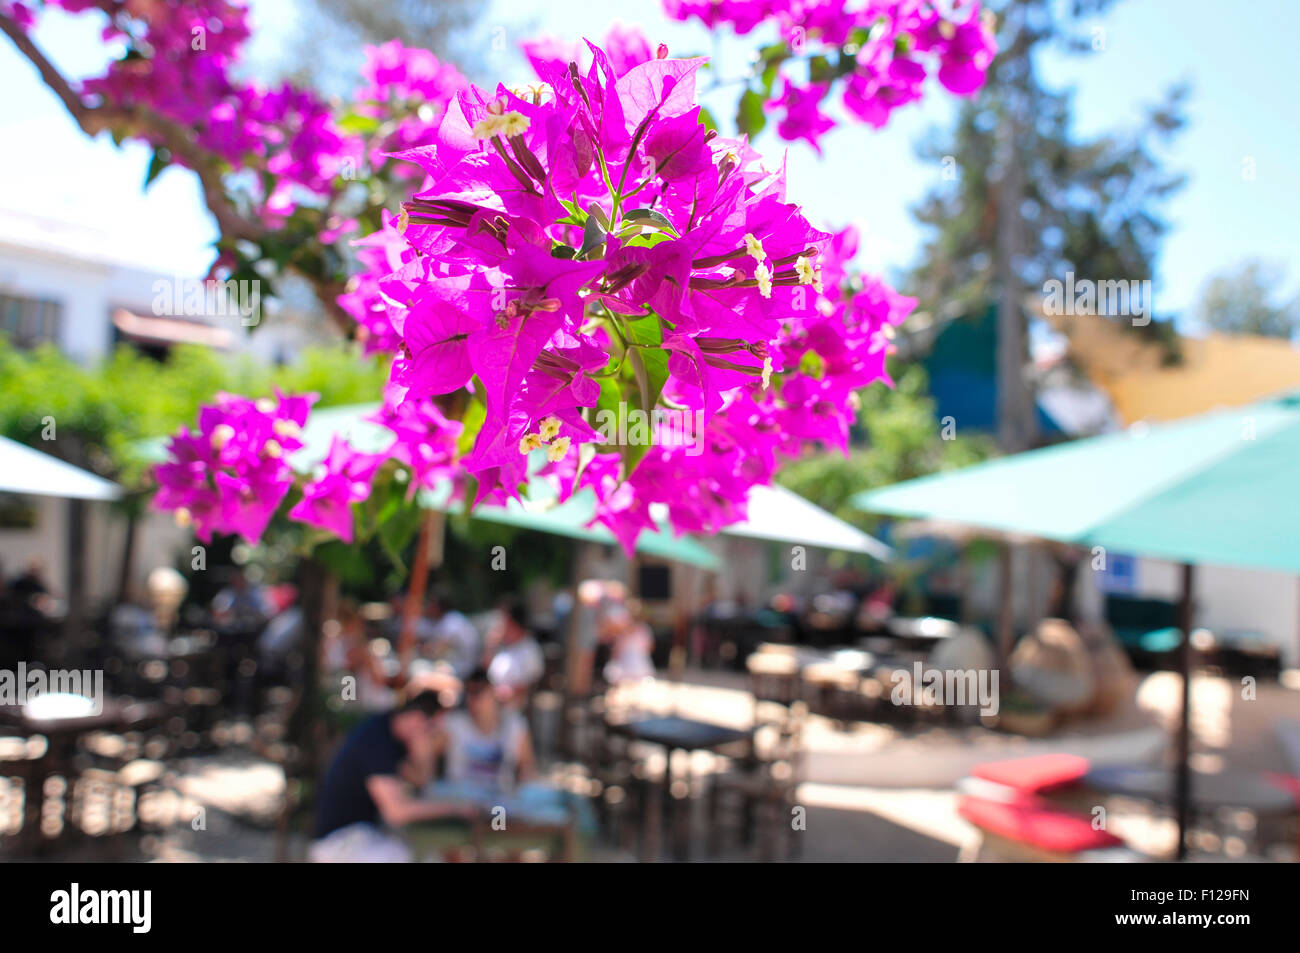 closeup of some purple bougainvillea flowers in a patio in Ibiza Island, Spain - Stock Image